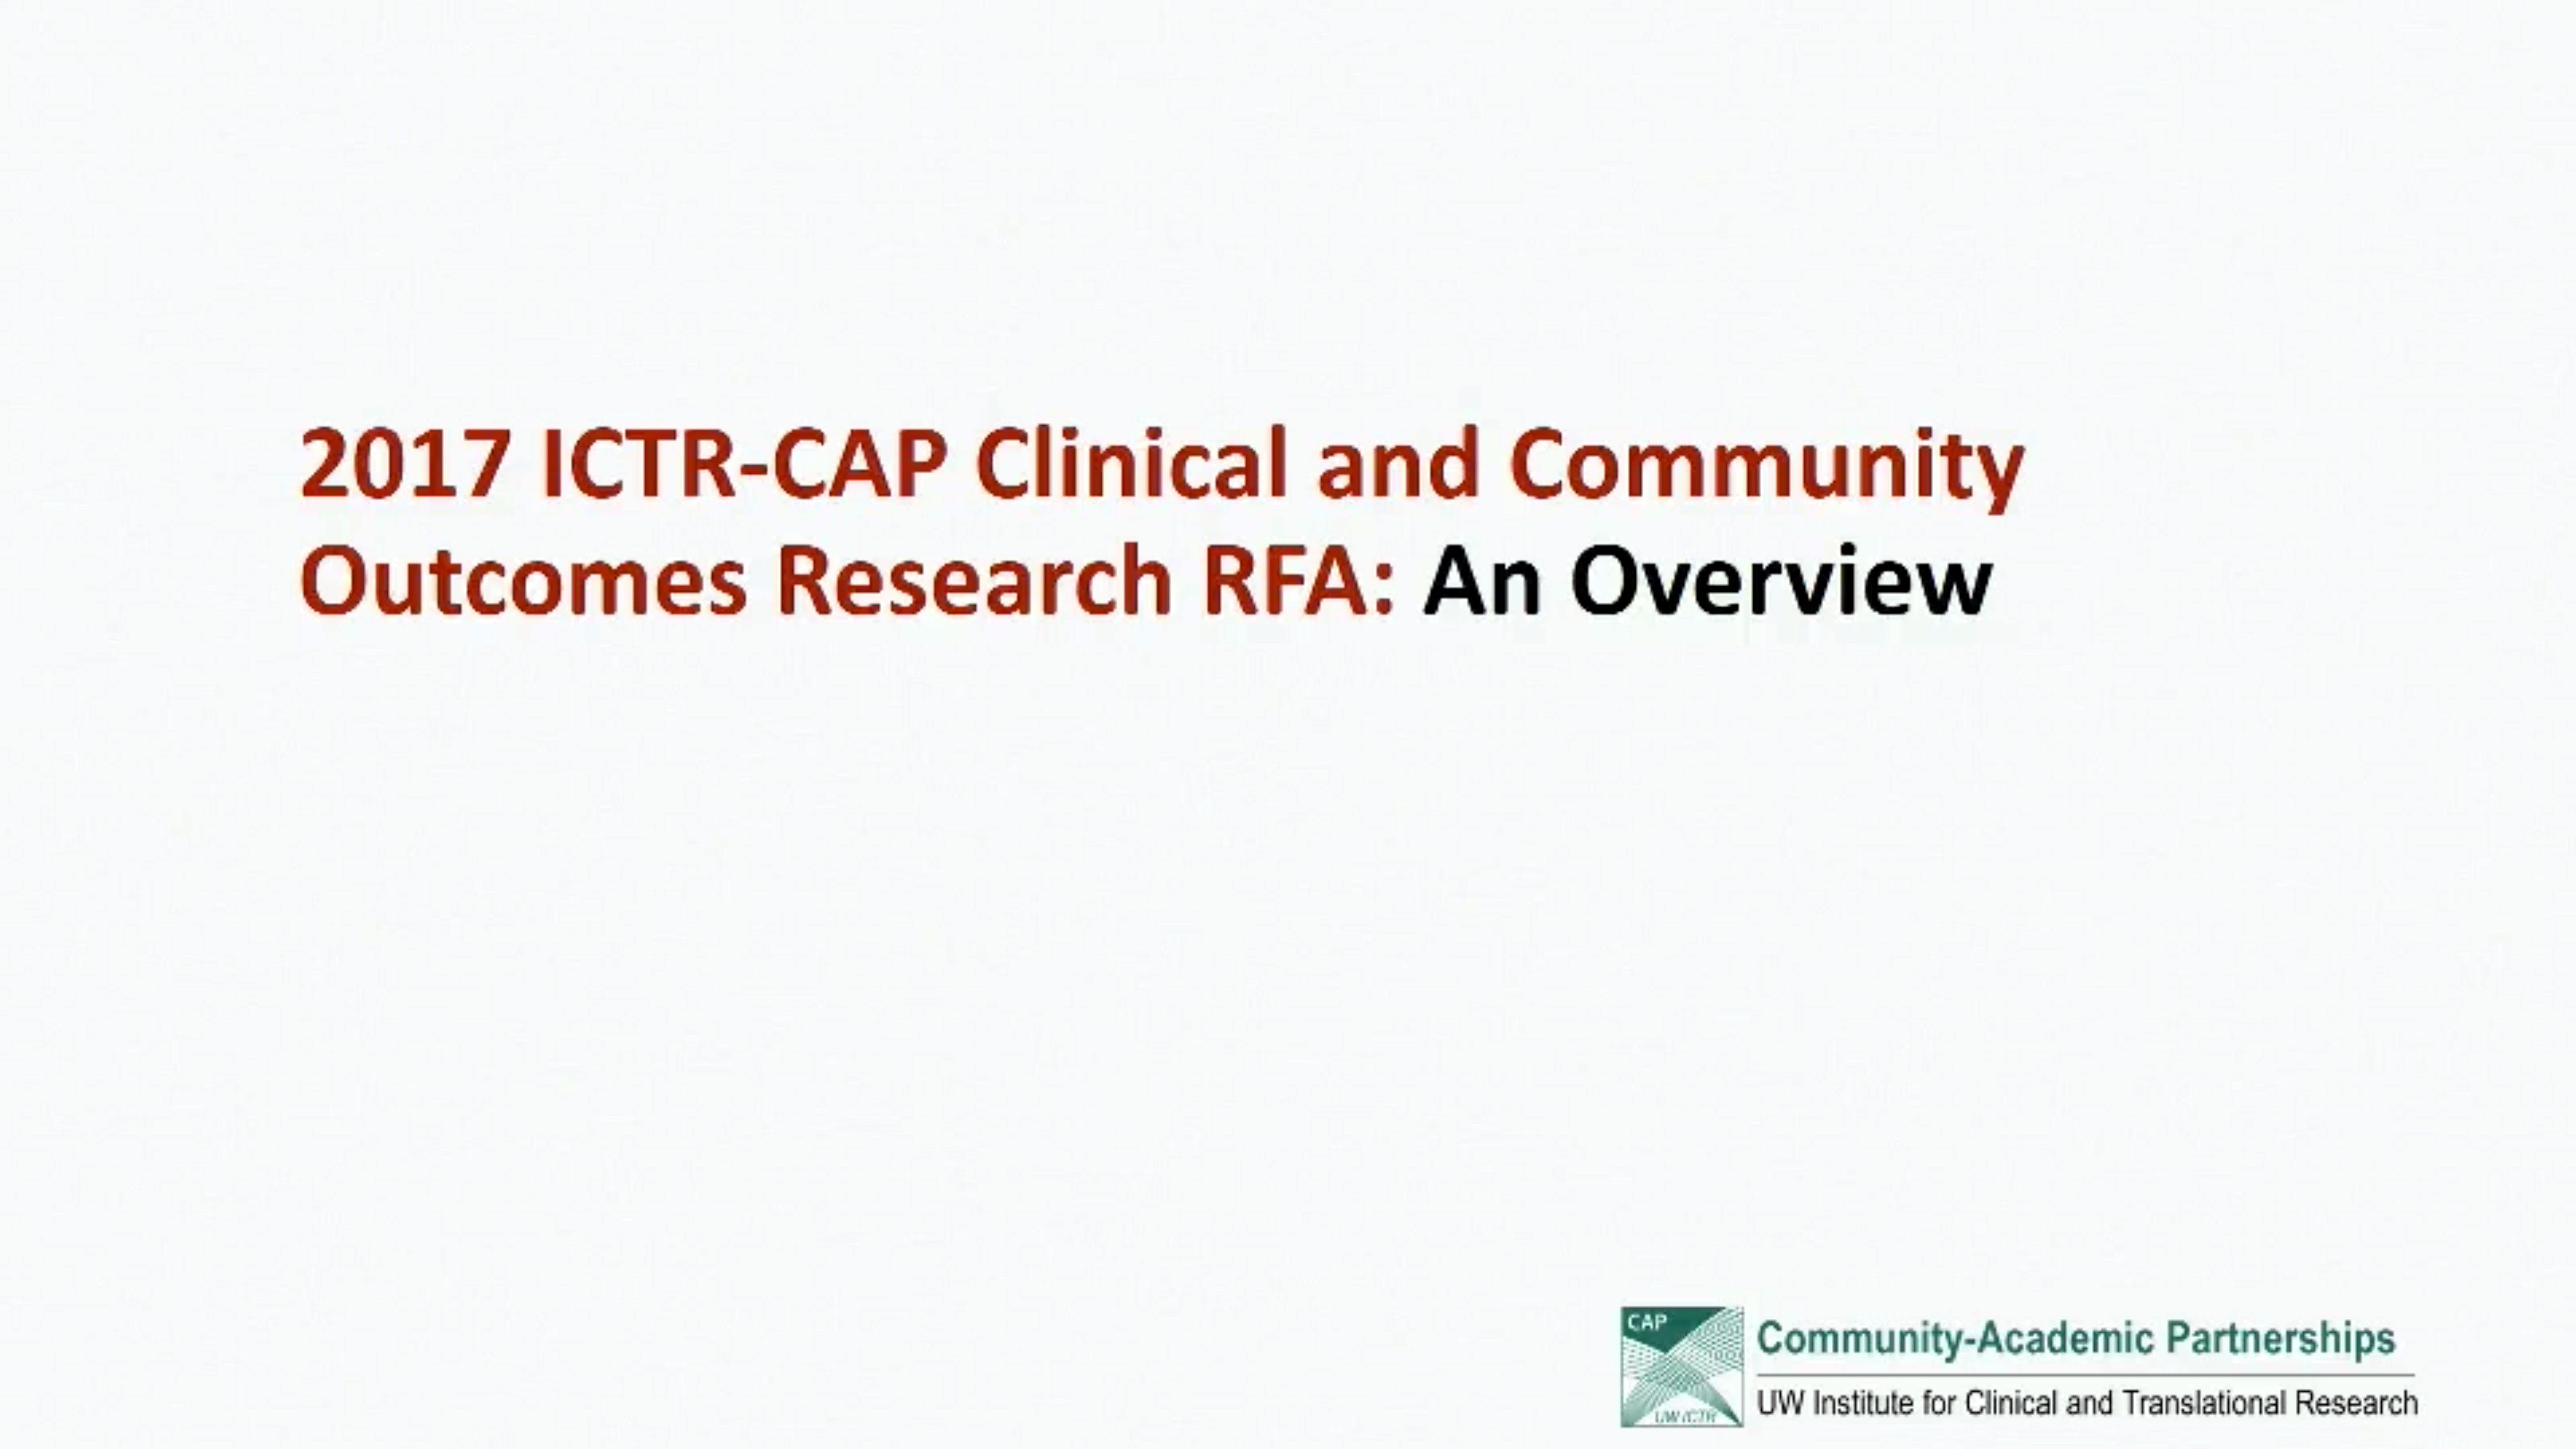 Picture from 2017 ICTR - CAP Clinical and Community Outcomes Research RFA video